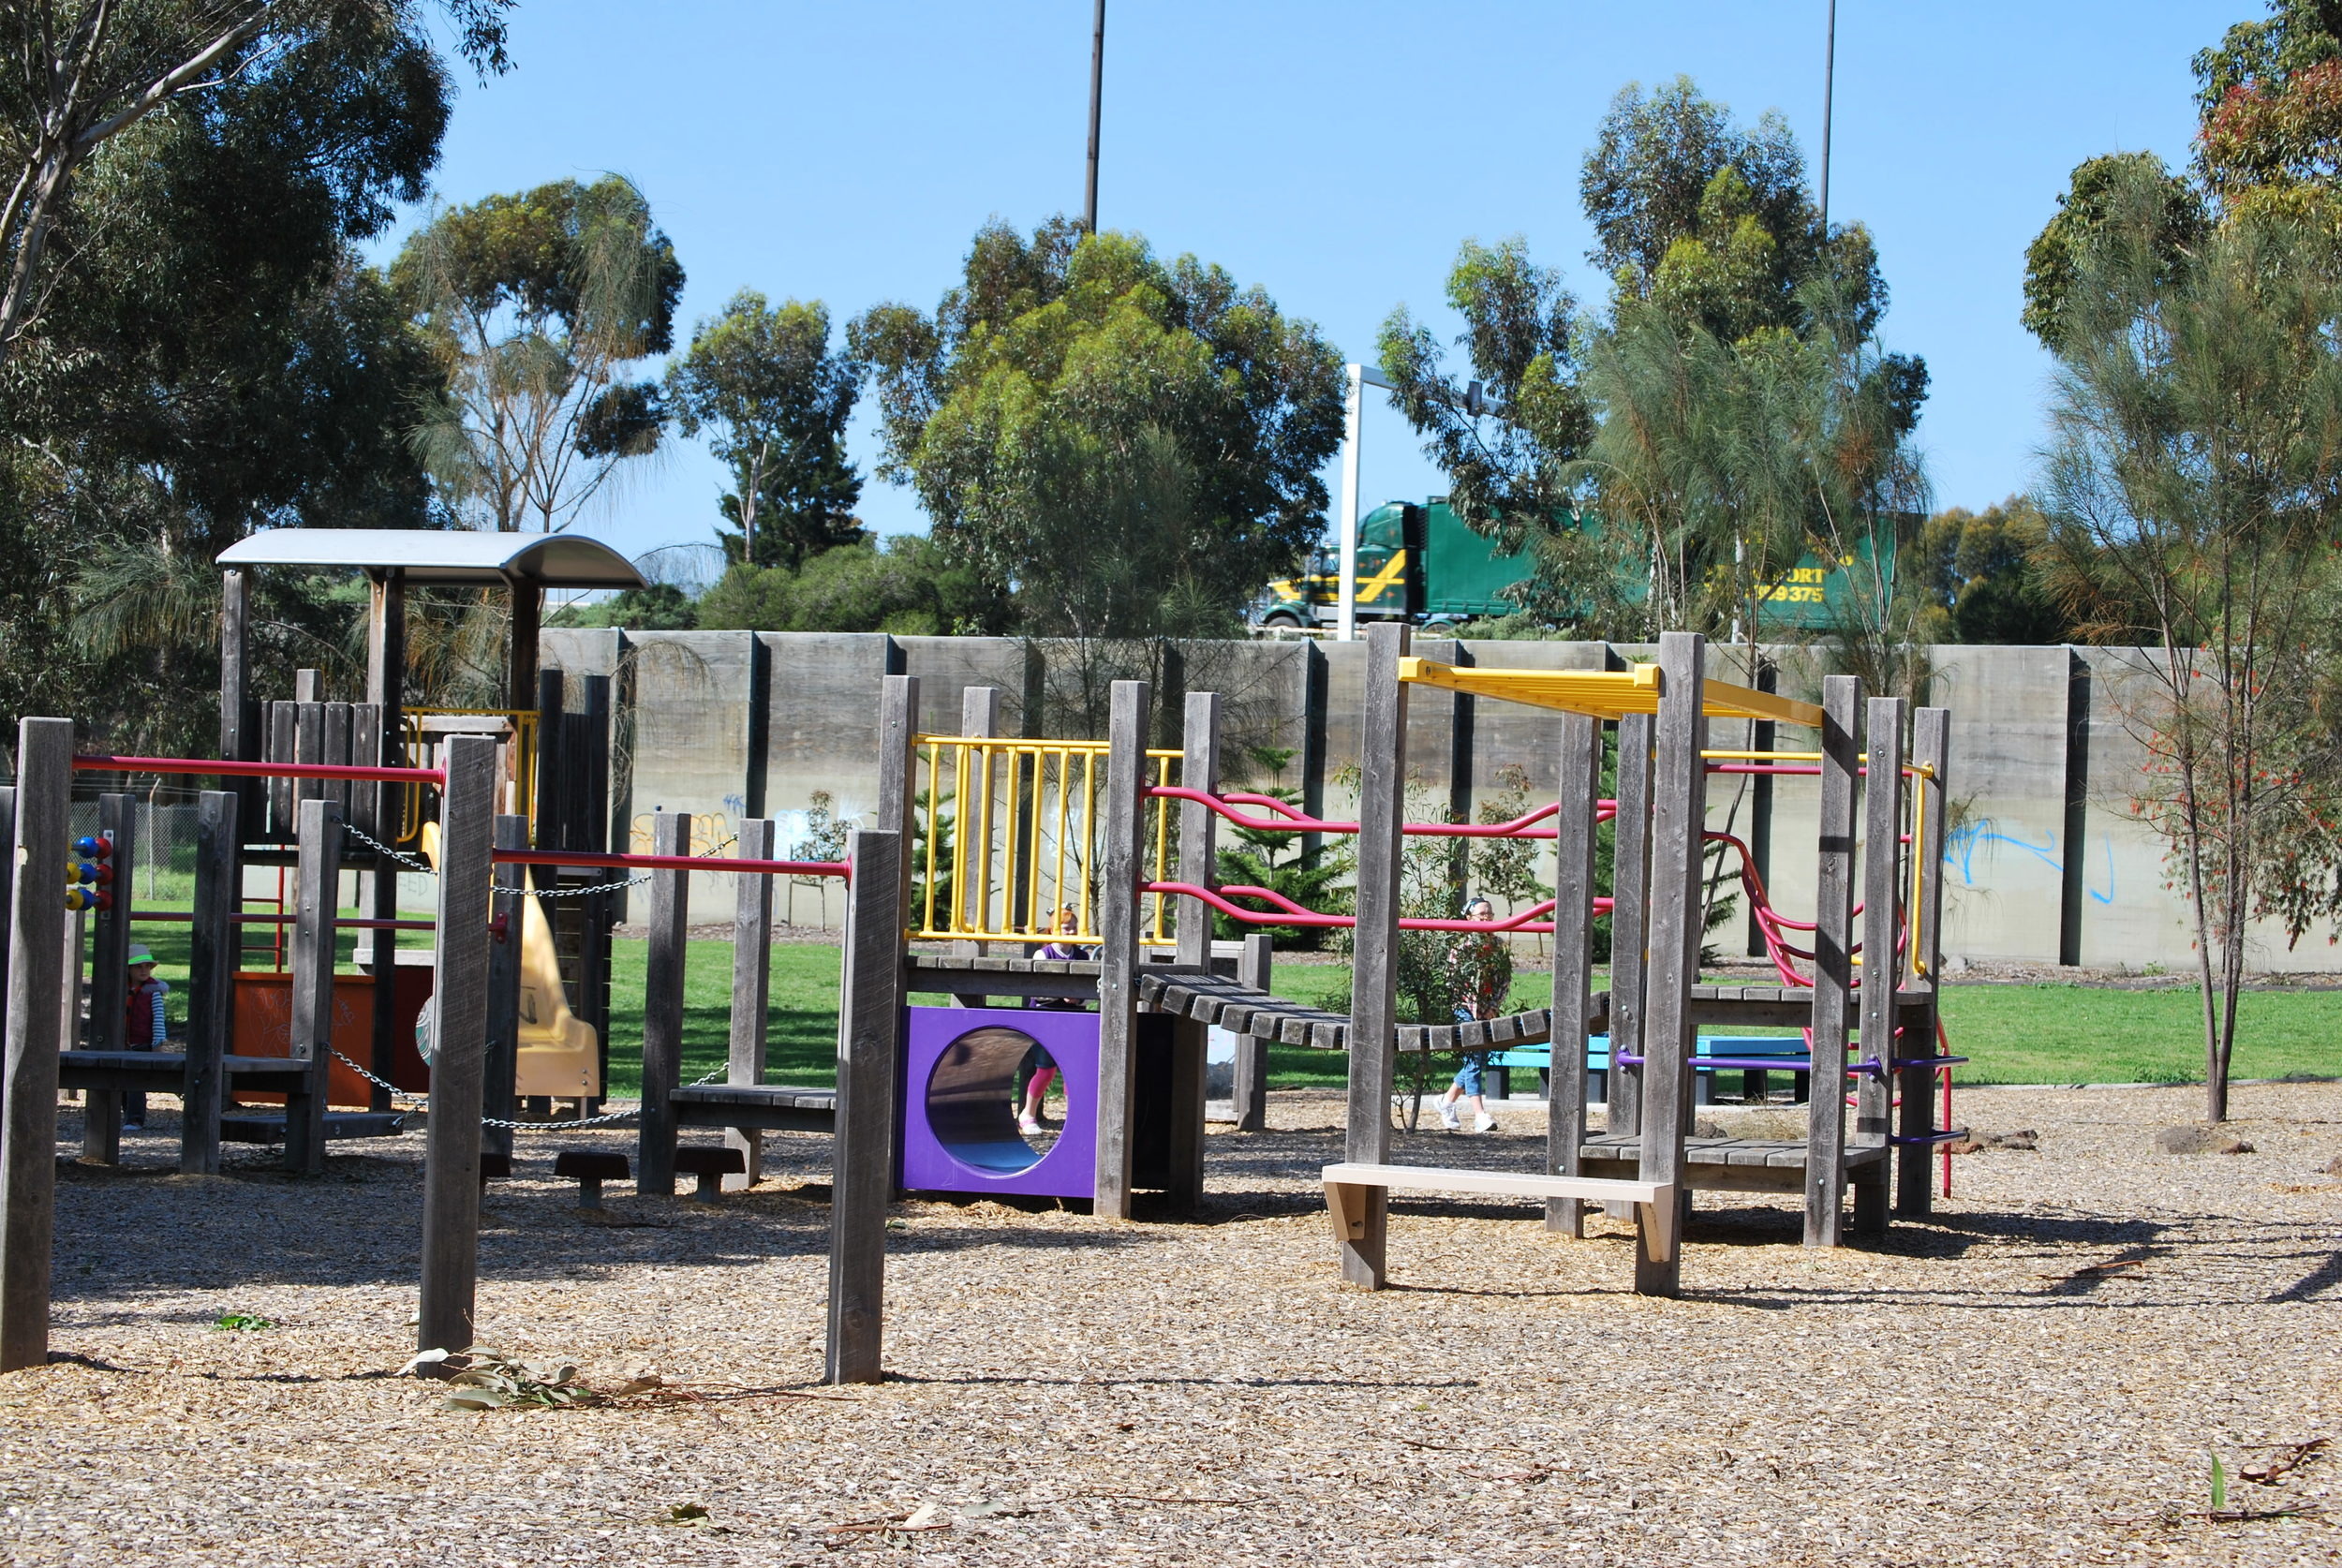 boulevard ave reserve, yarraville - Mamma Knows West